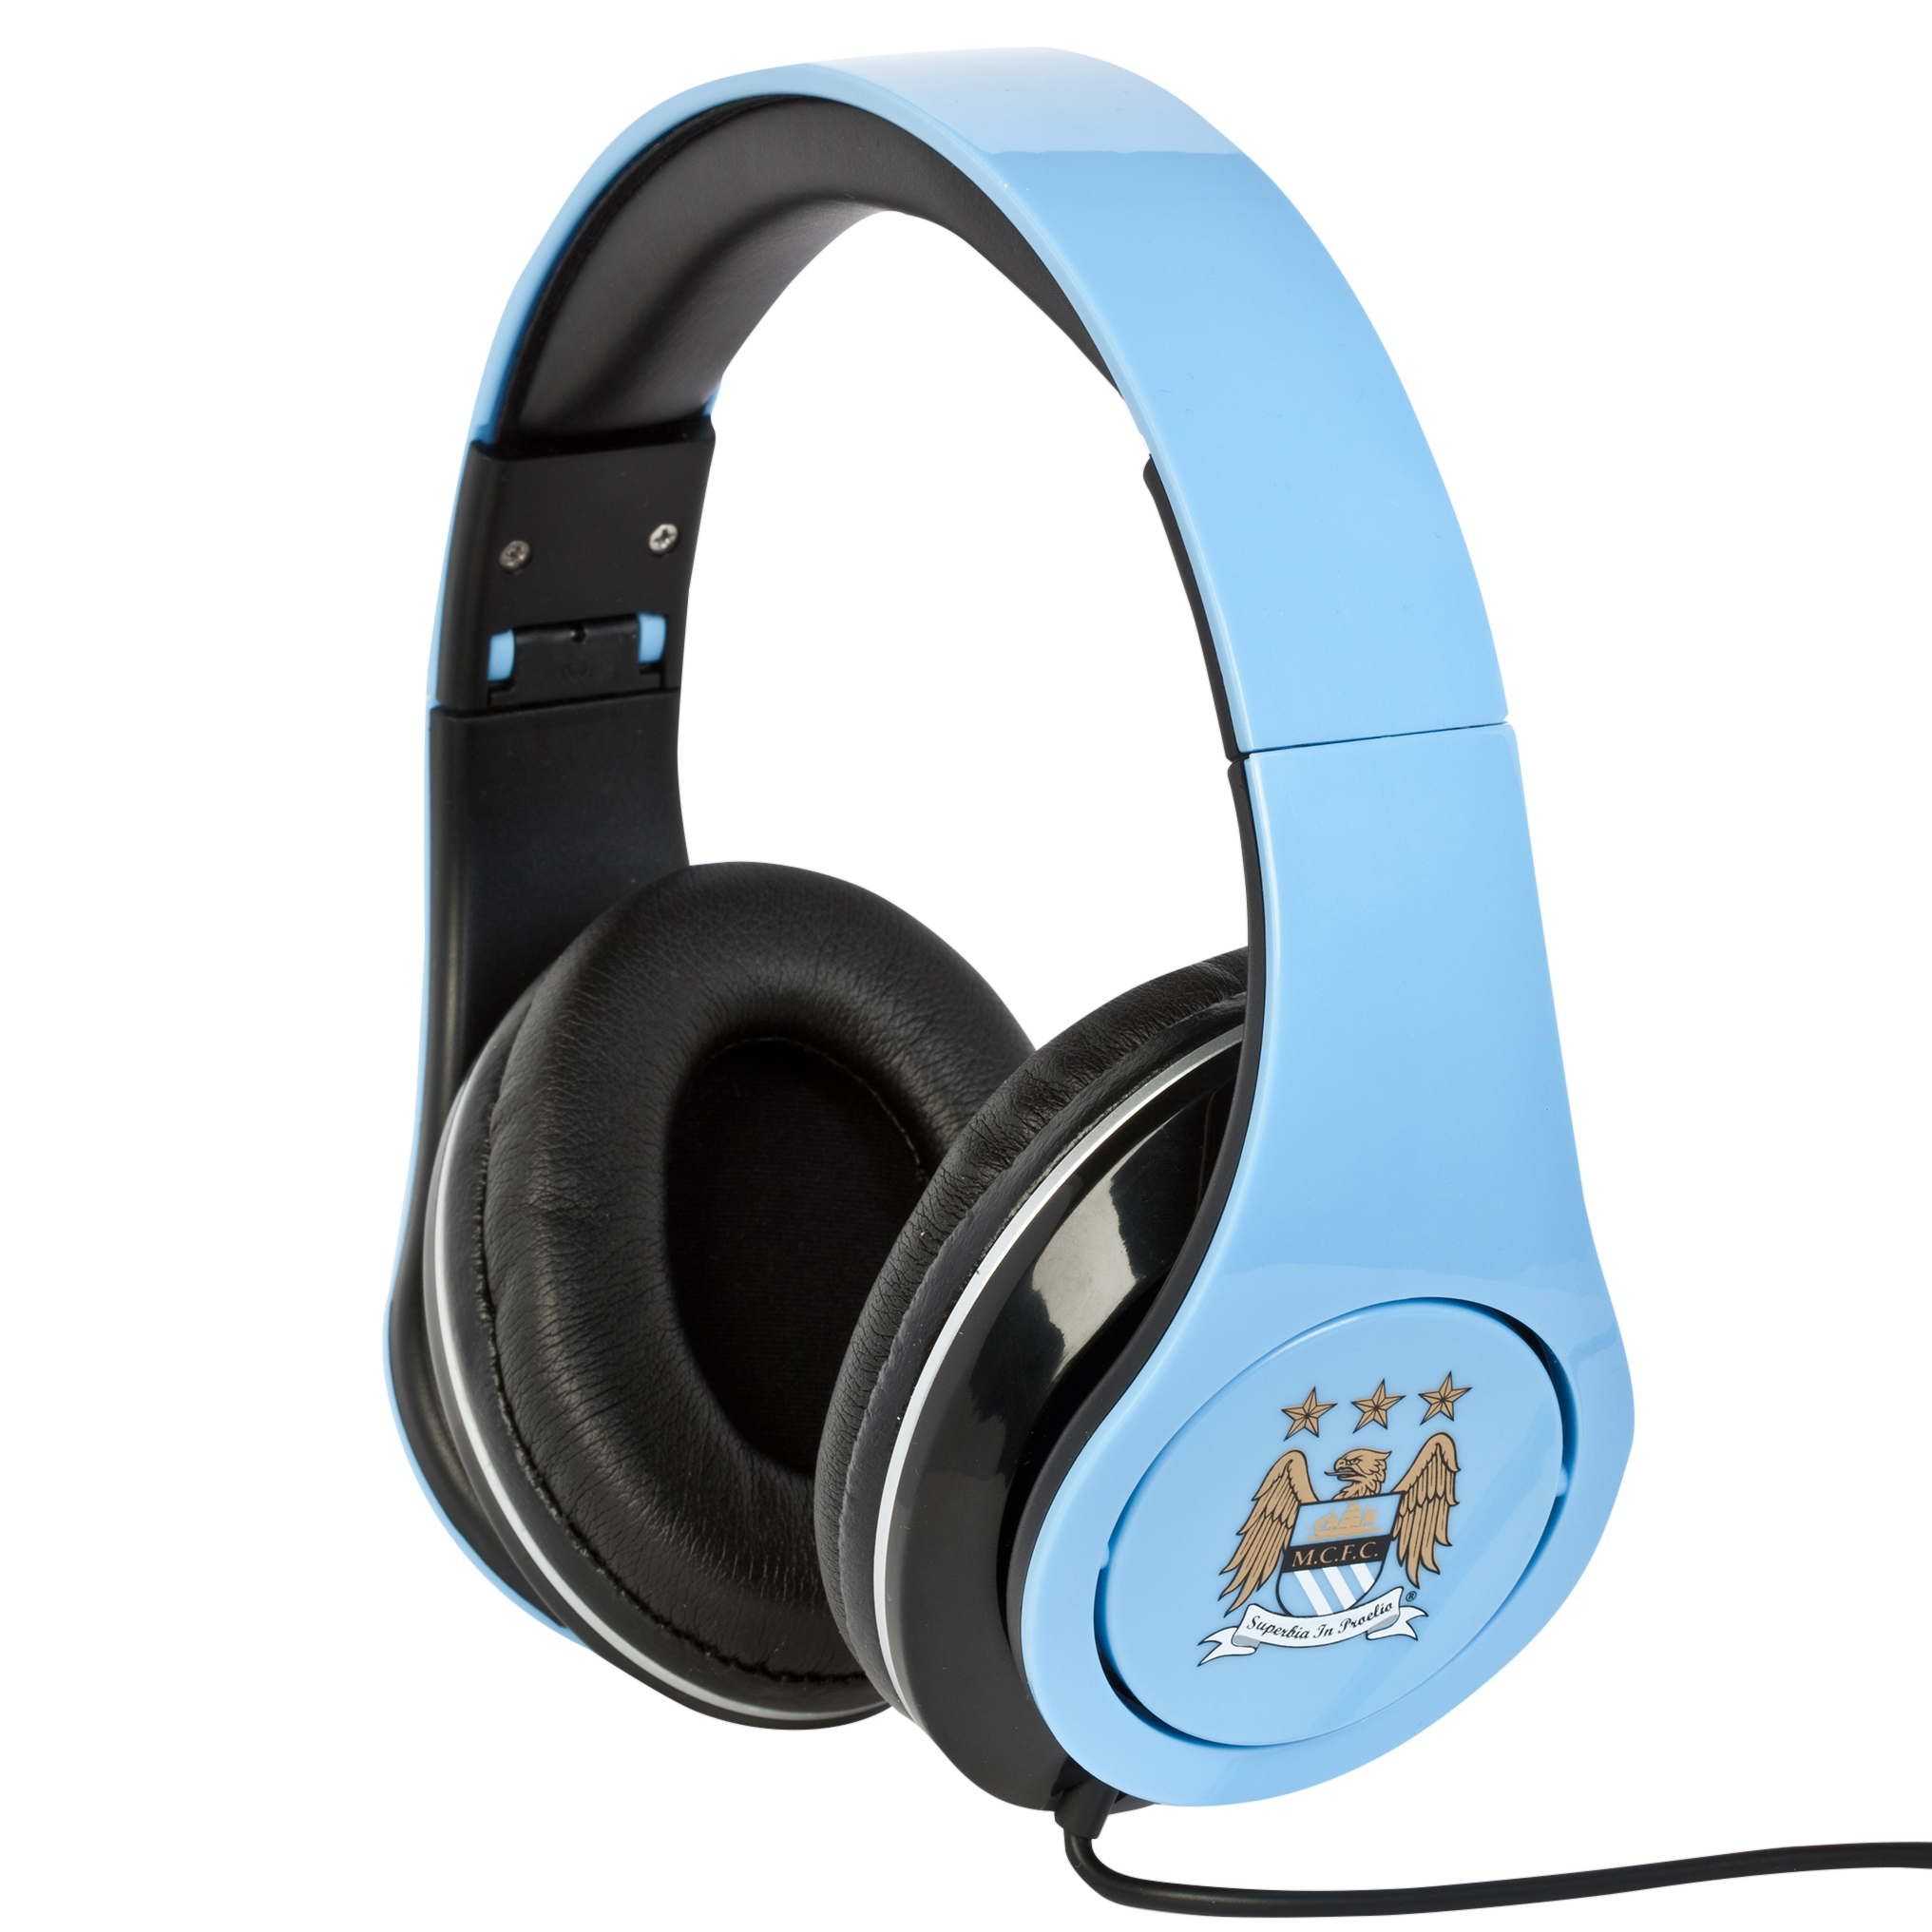 City Headphones || Click here to view the city headphones